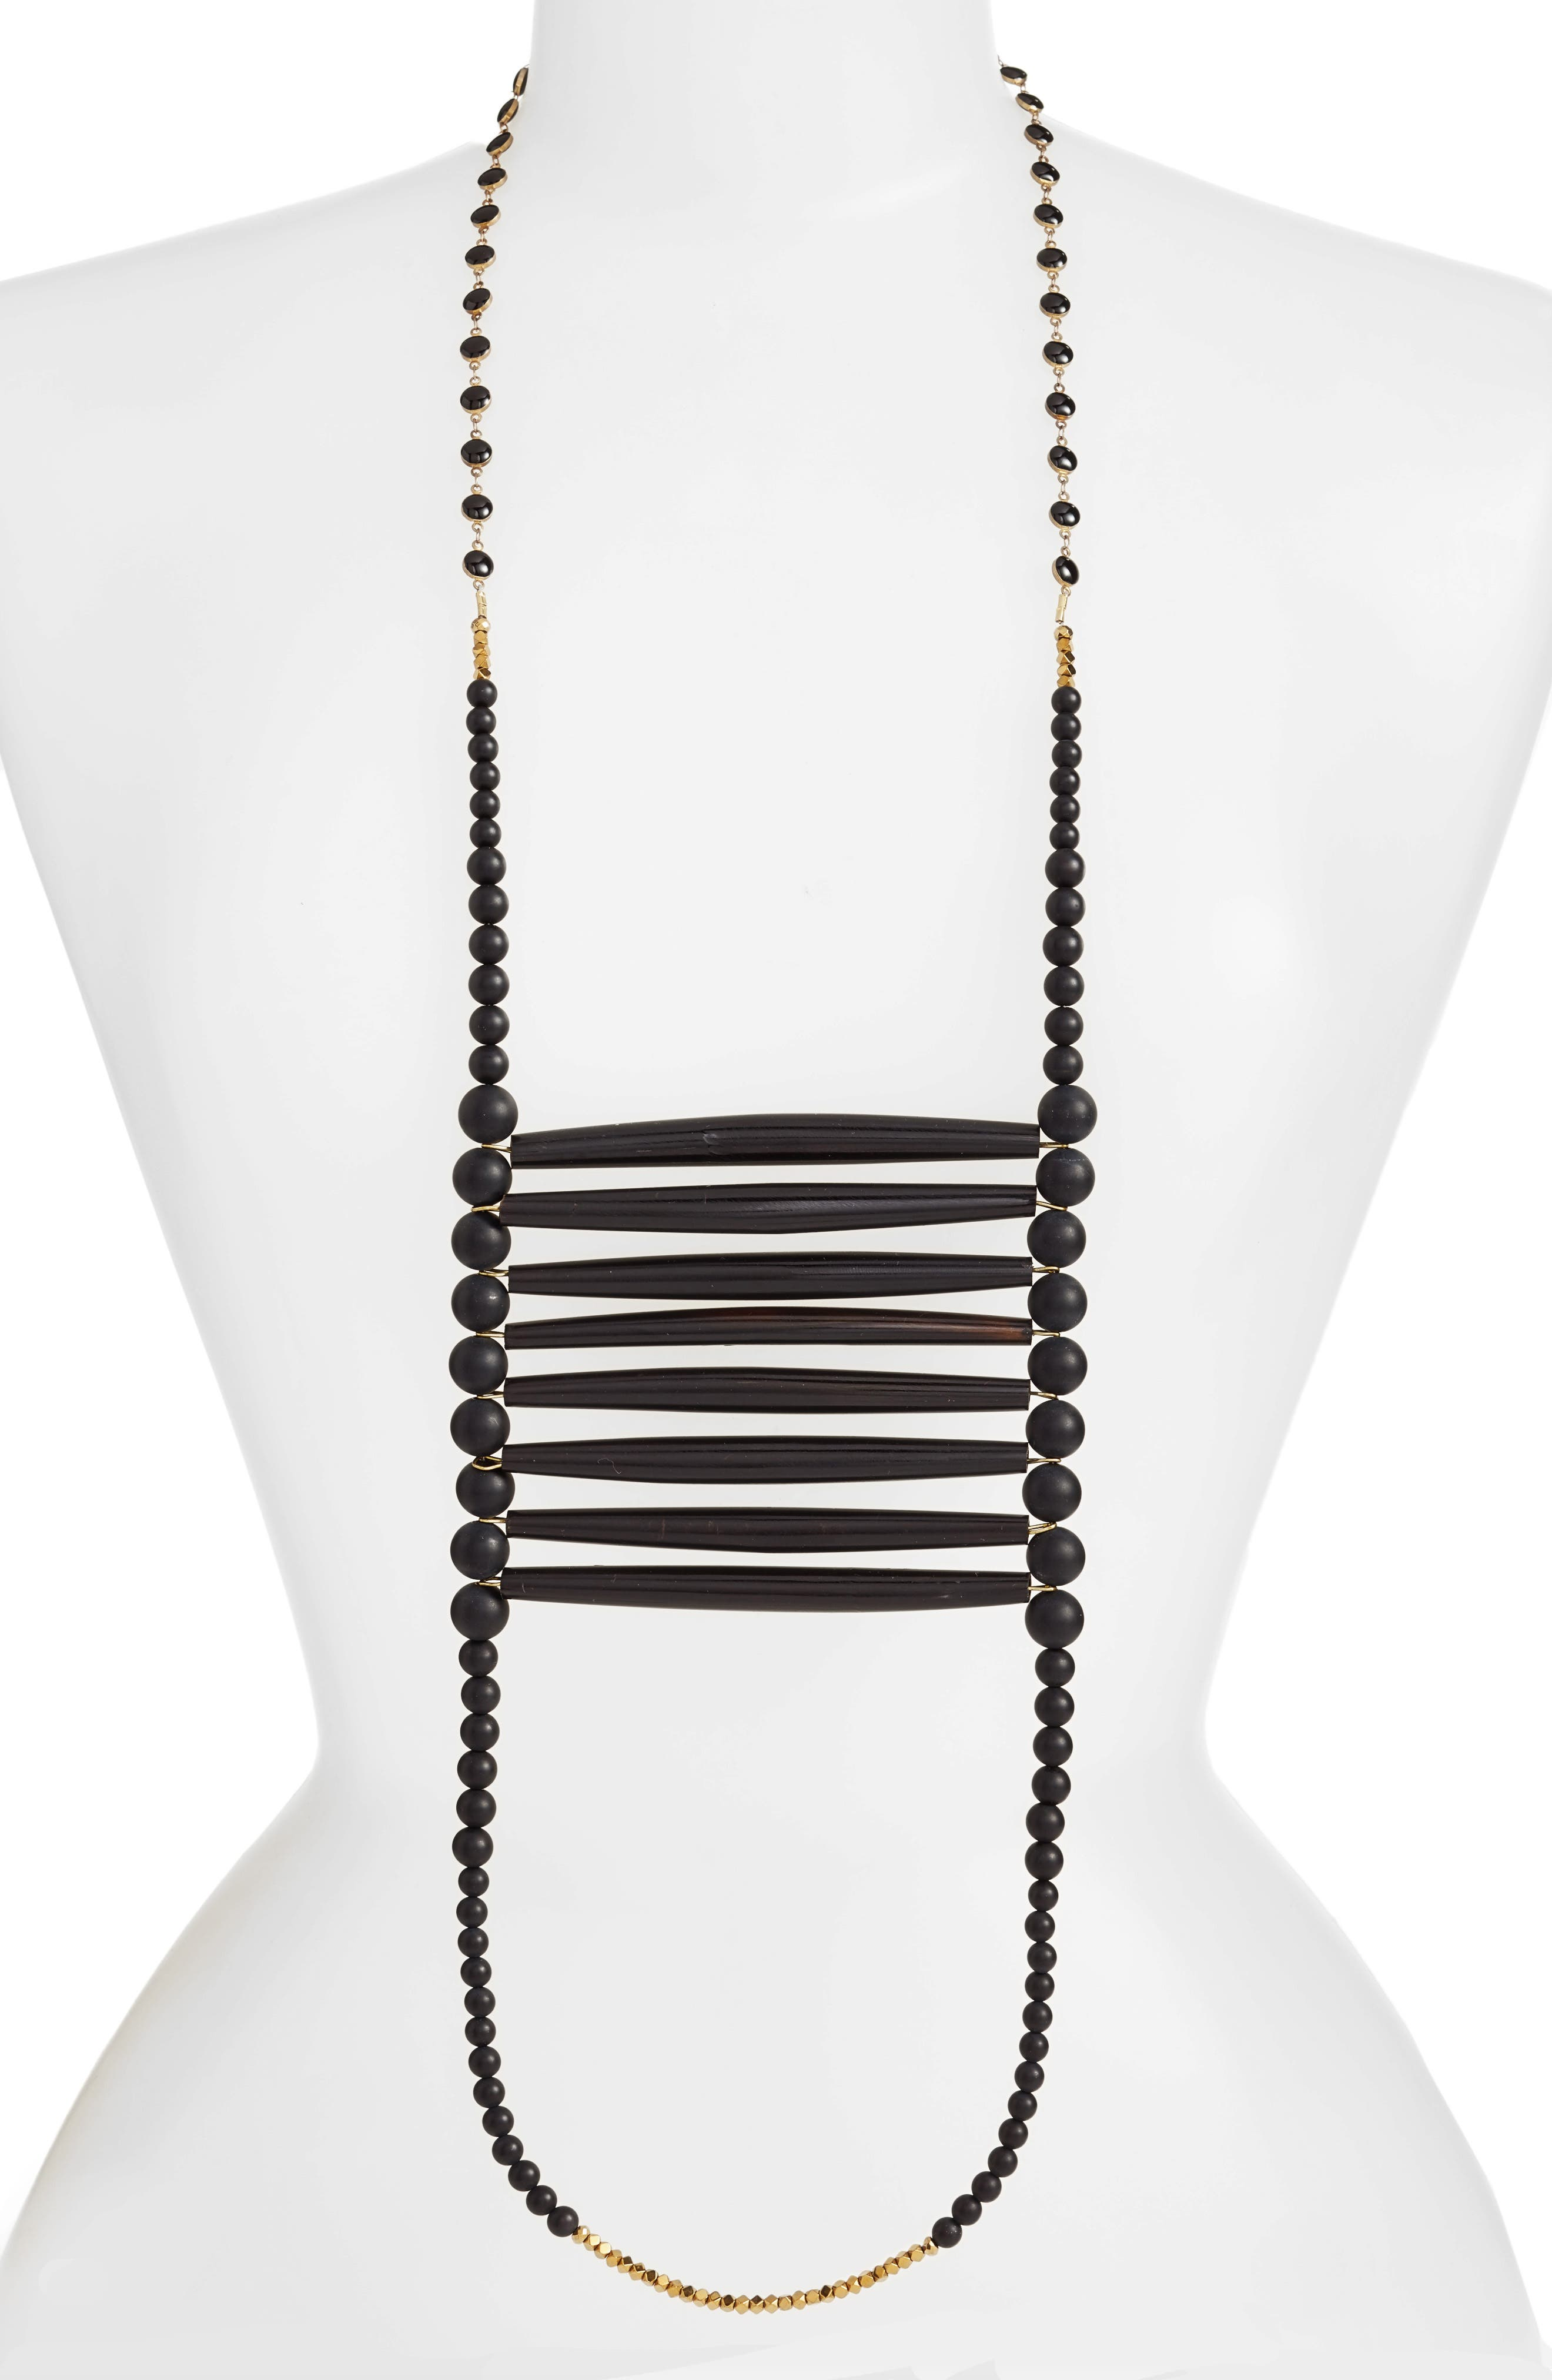 Into the Black Extra Long Beaded Necklace,                             Main thumbnail 1, color,                             Black